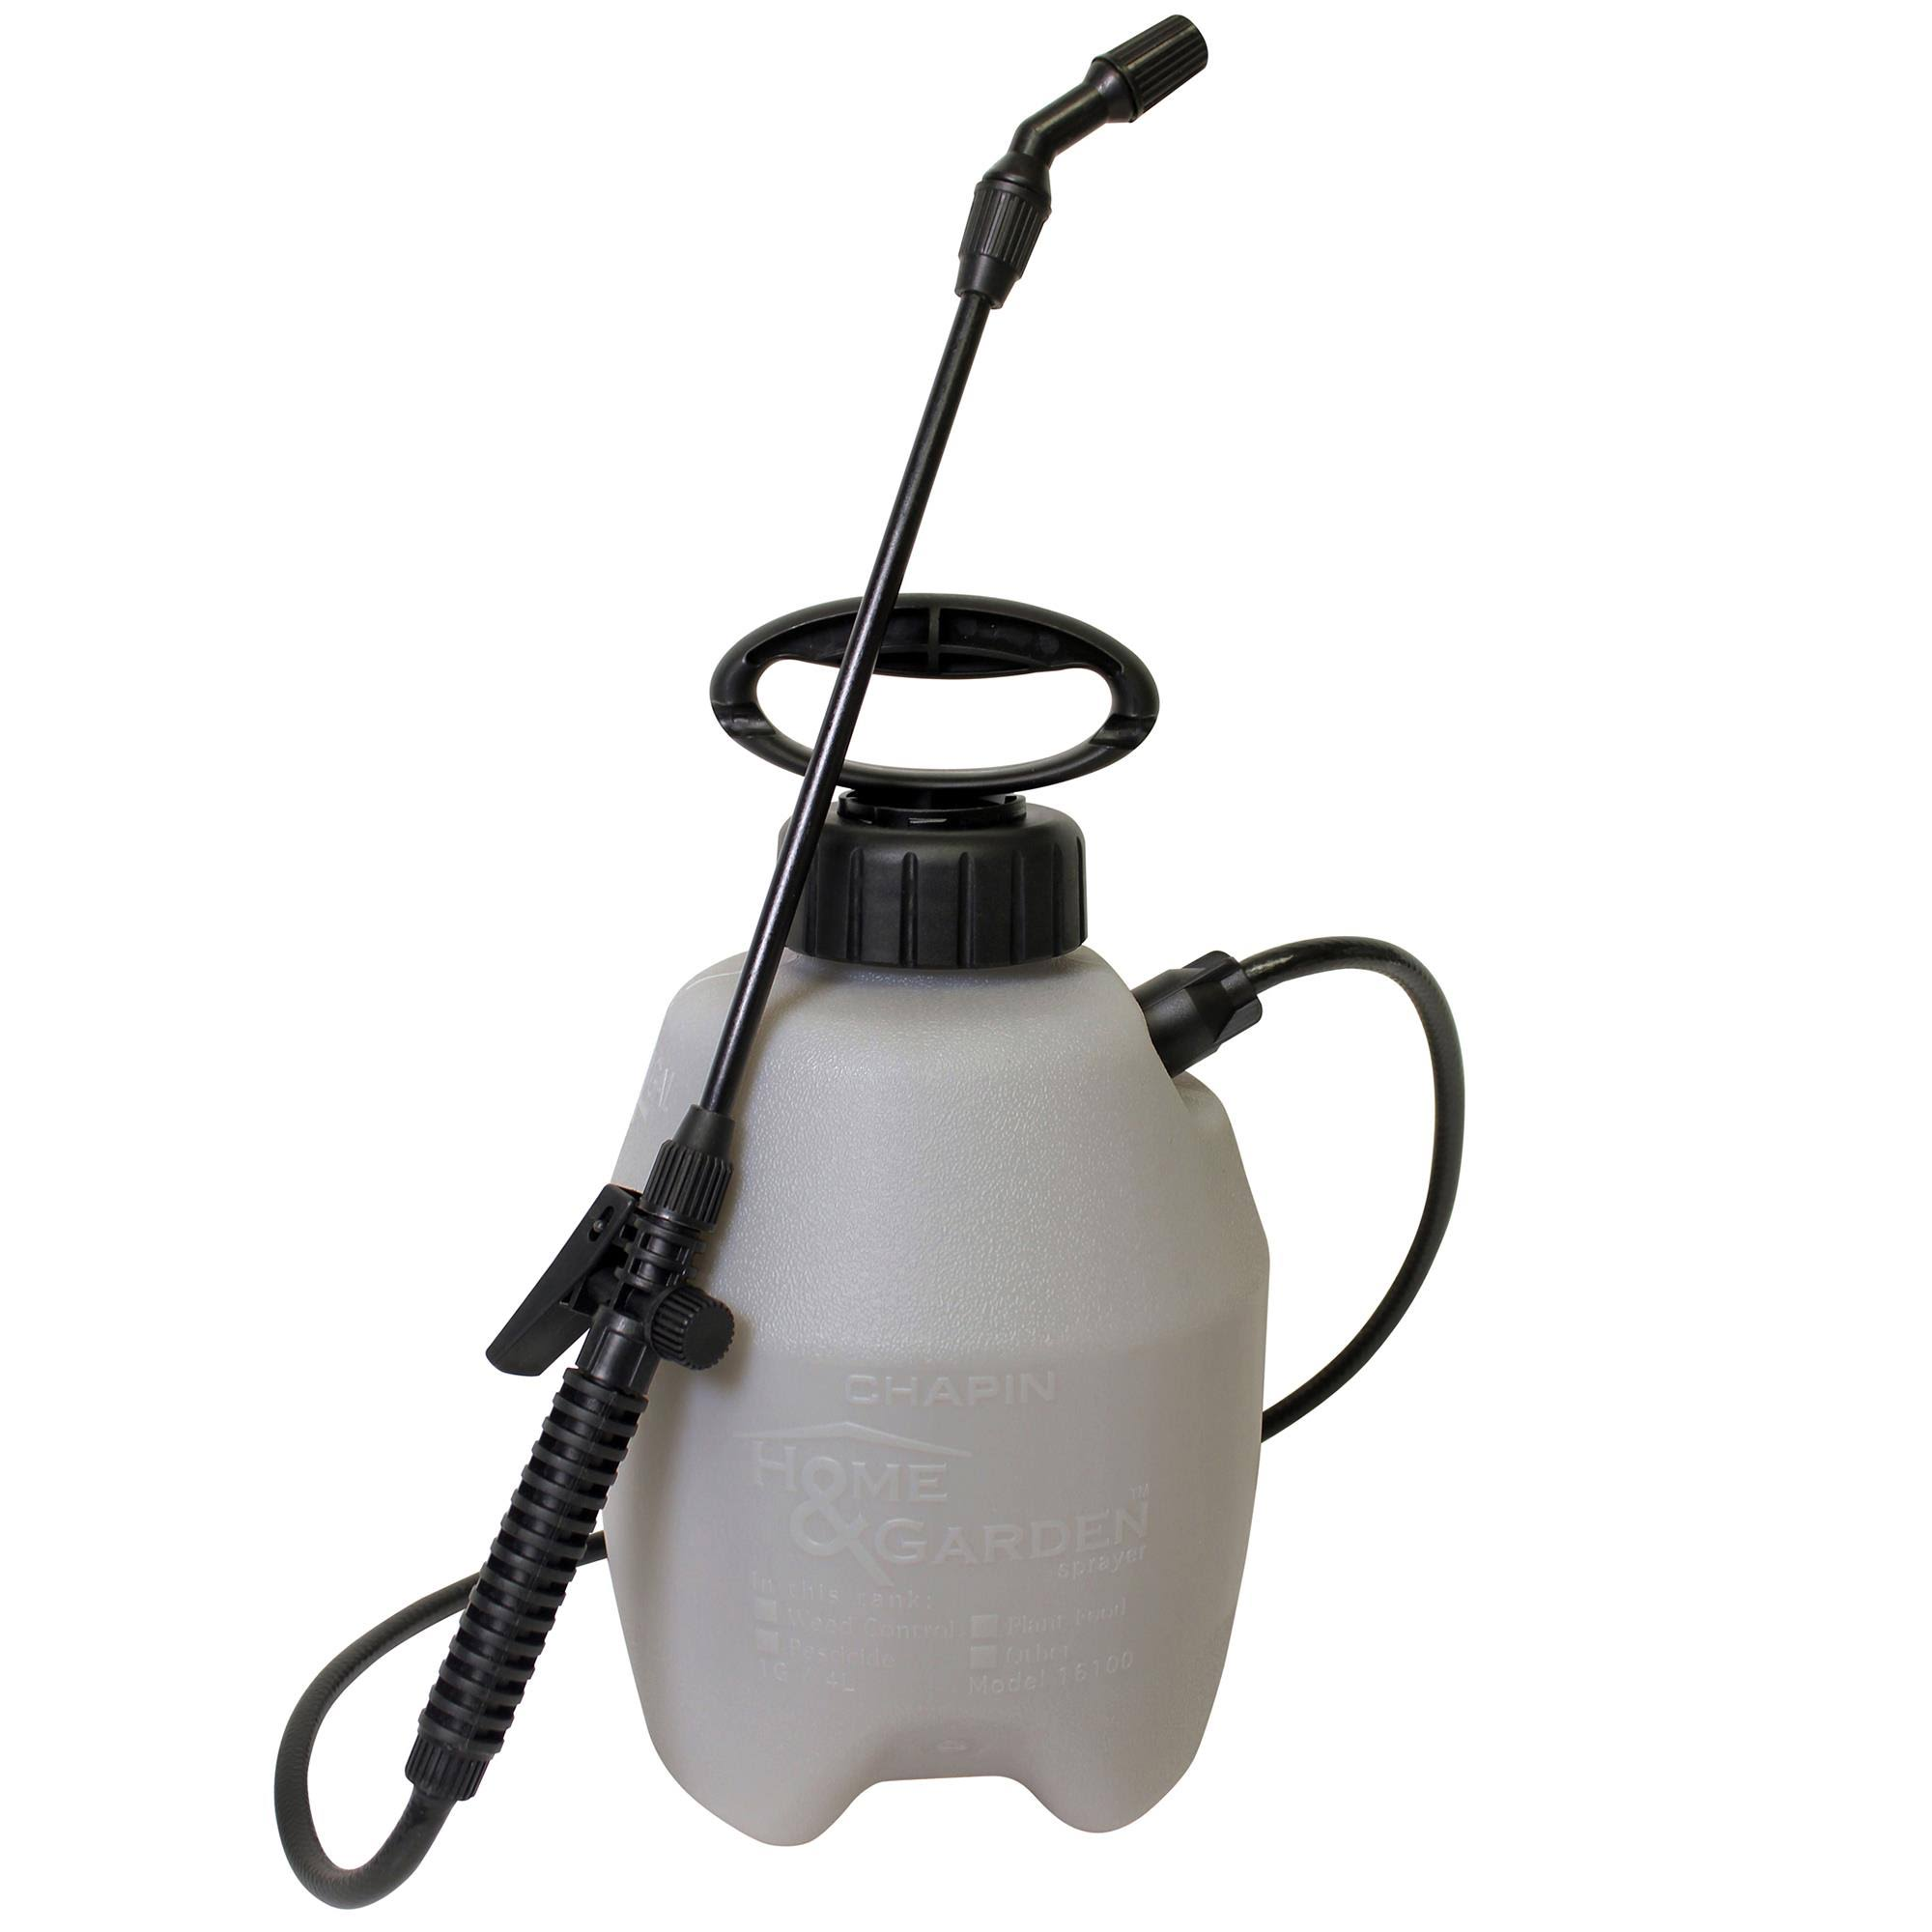 "Chapin Home and Garden Poly Tank Pump Sprayer - 1 Gallon, with 16"" Wand"